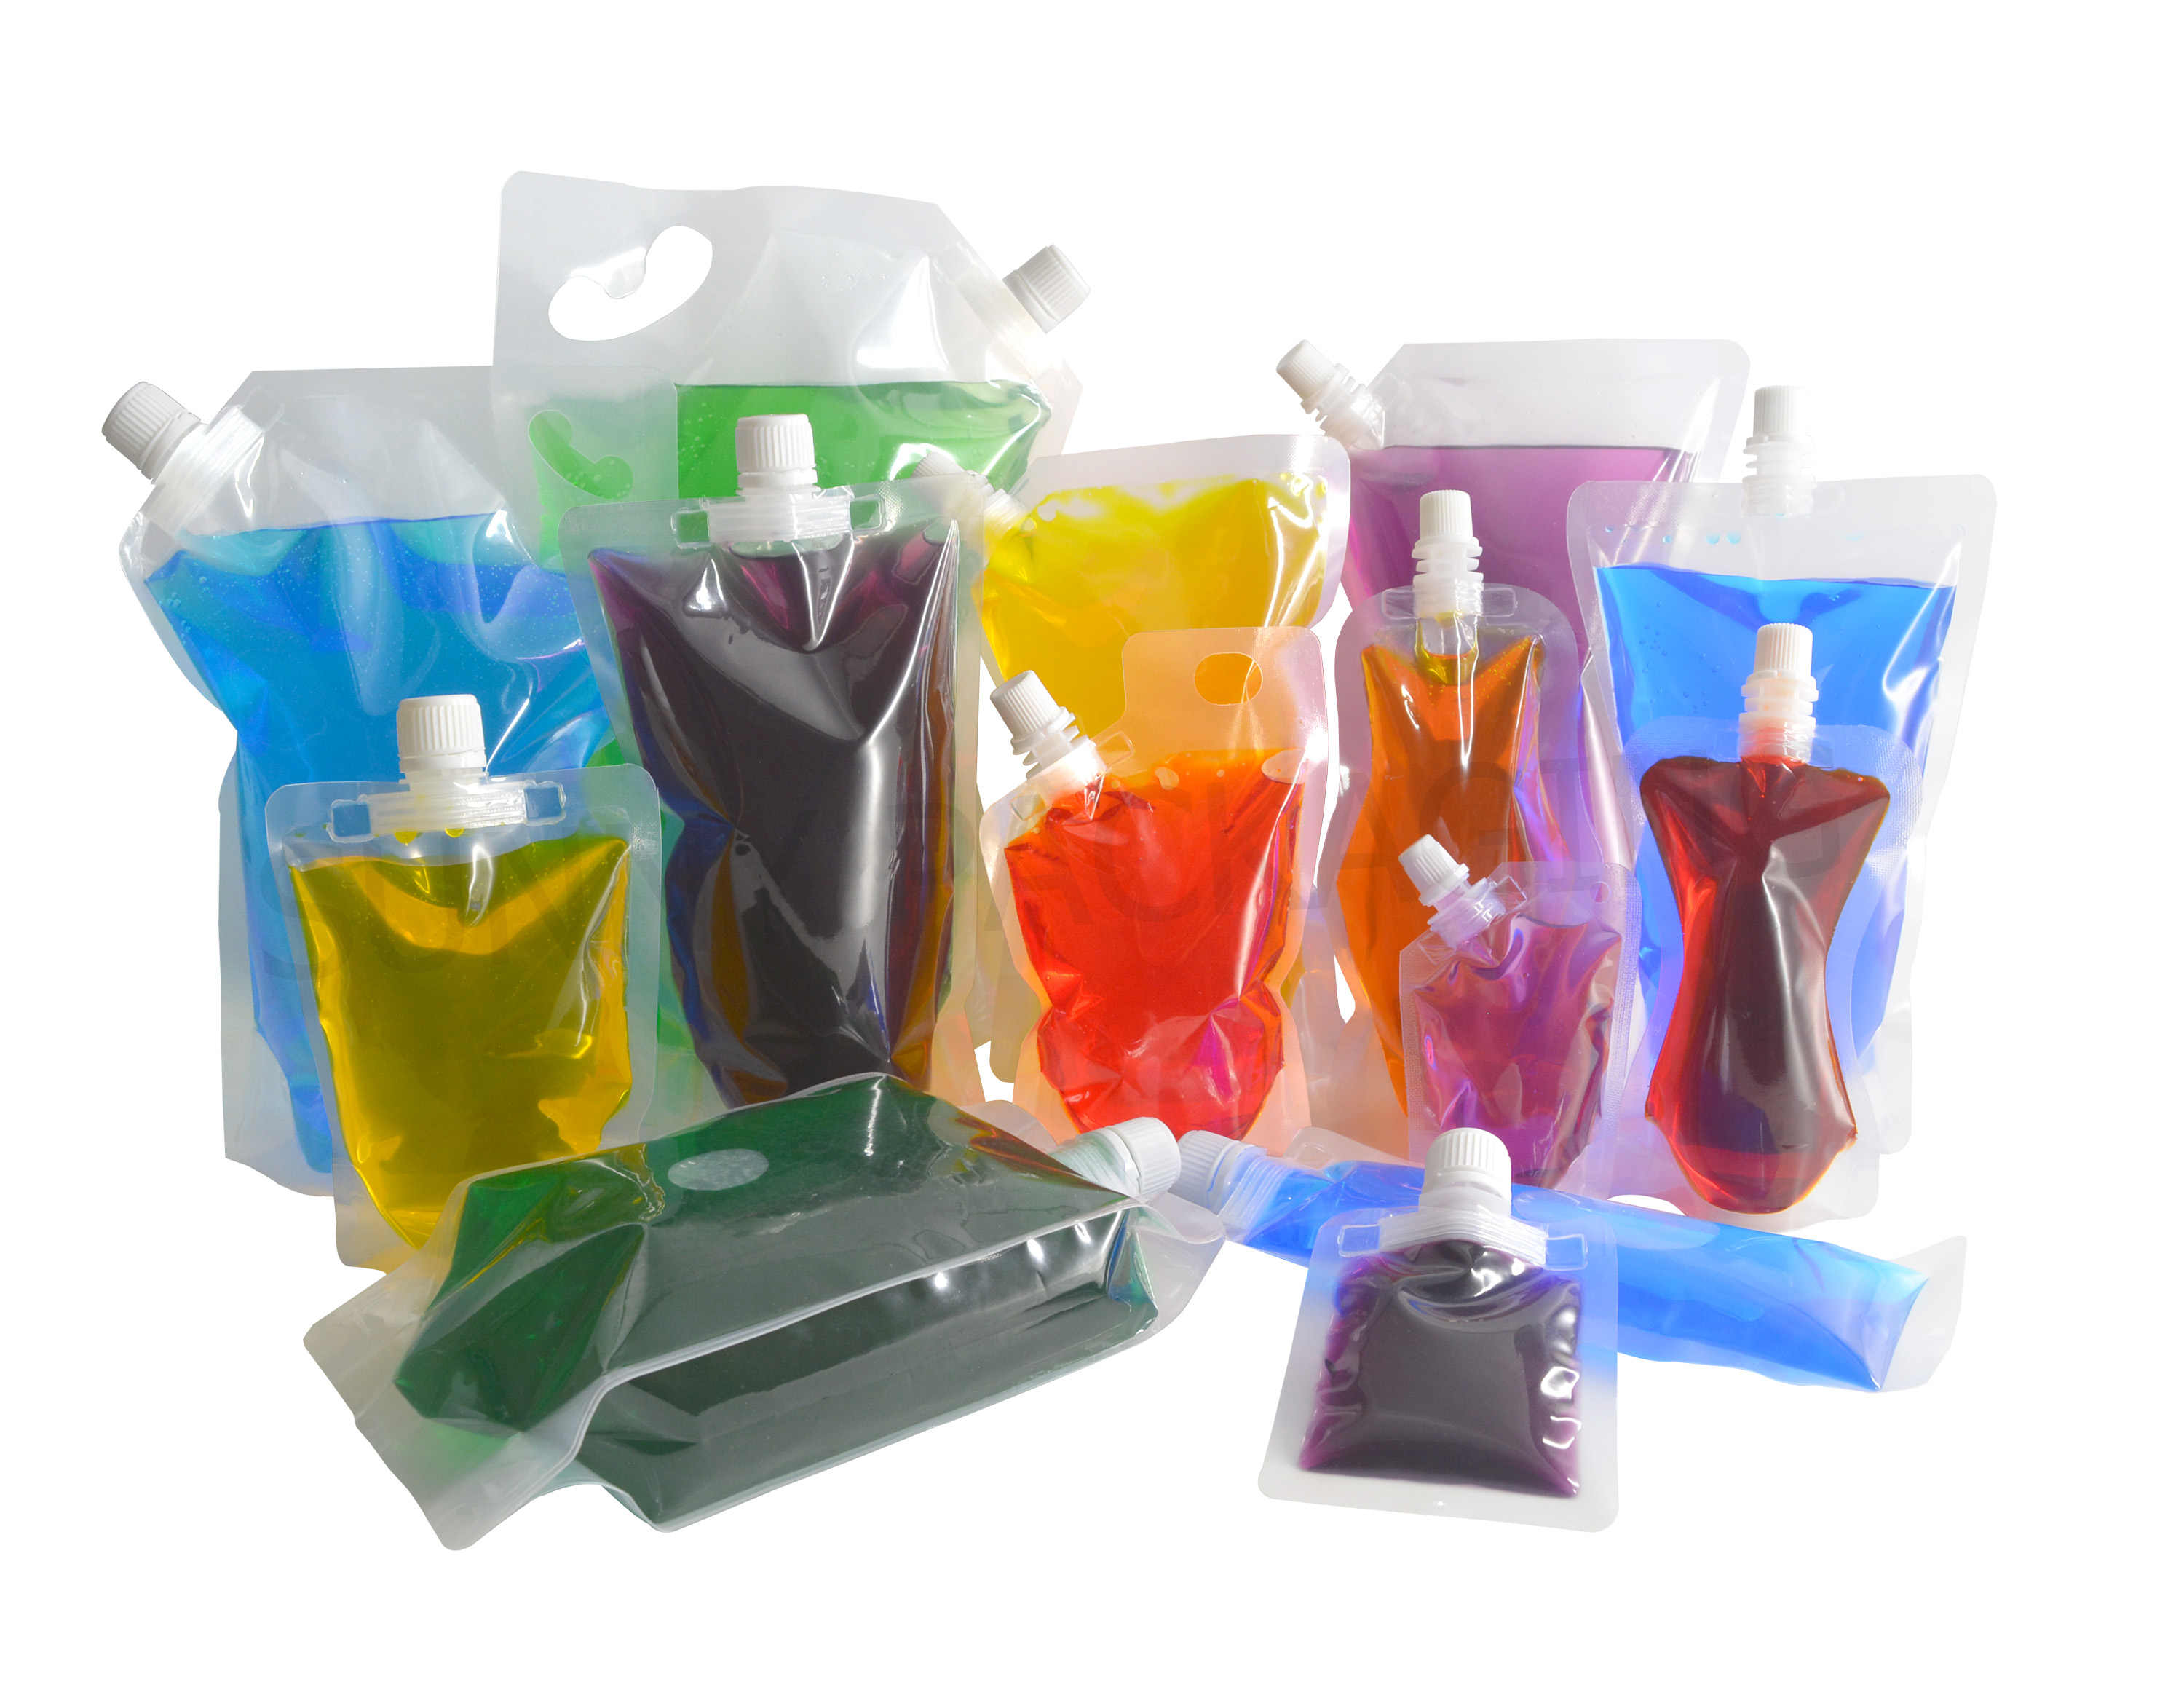 20 pcs Full Transparent Plastic Spout Pouch Juice Pouch,Wine Flask Pouch BPA Free Food Materials Storage Bags  30 ml-500 ml